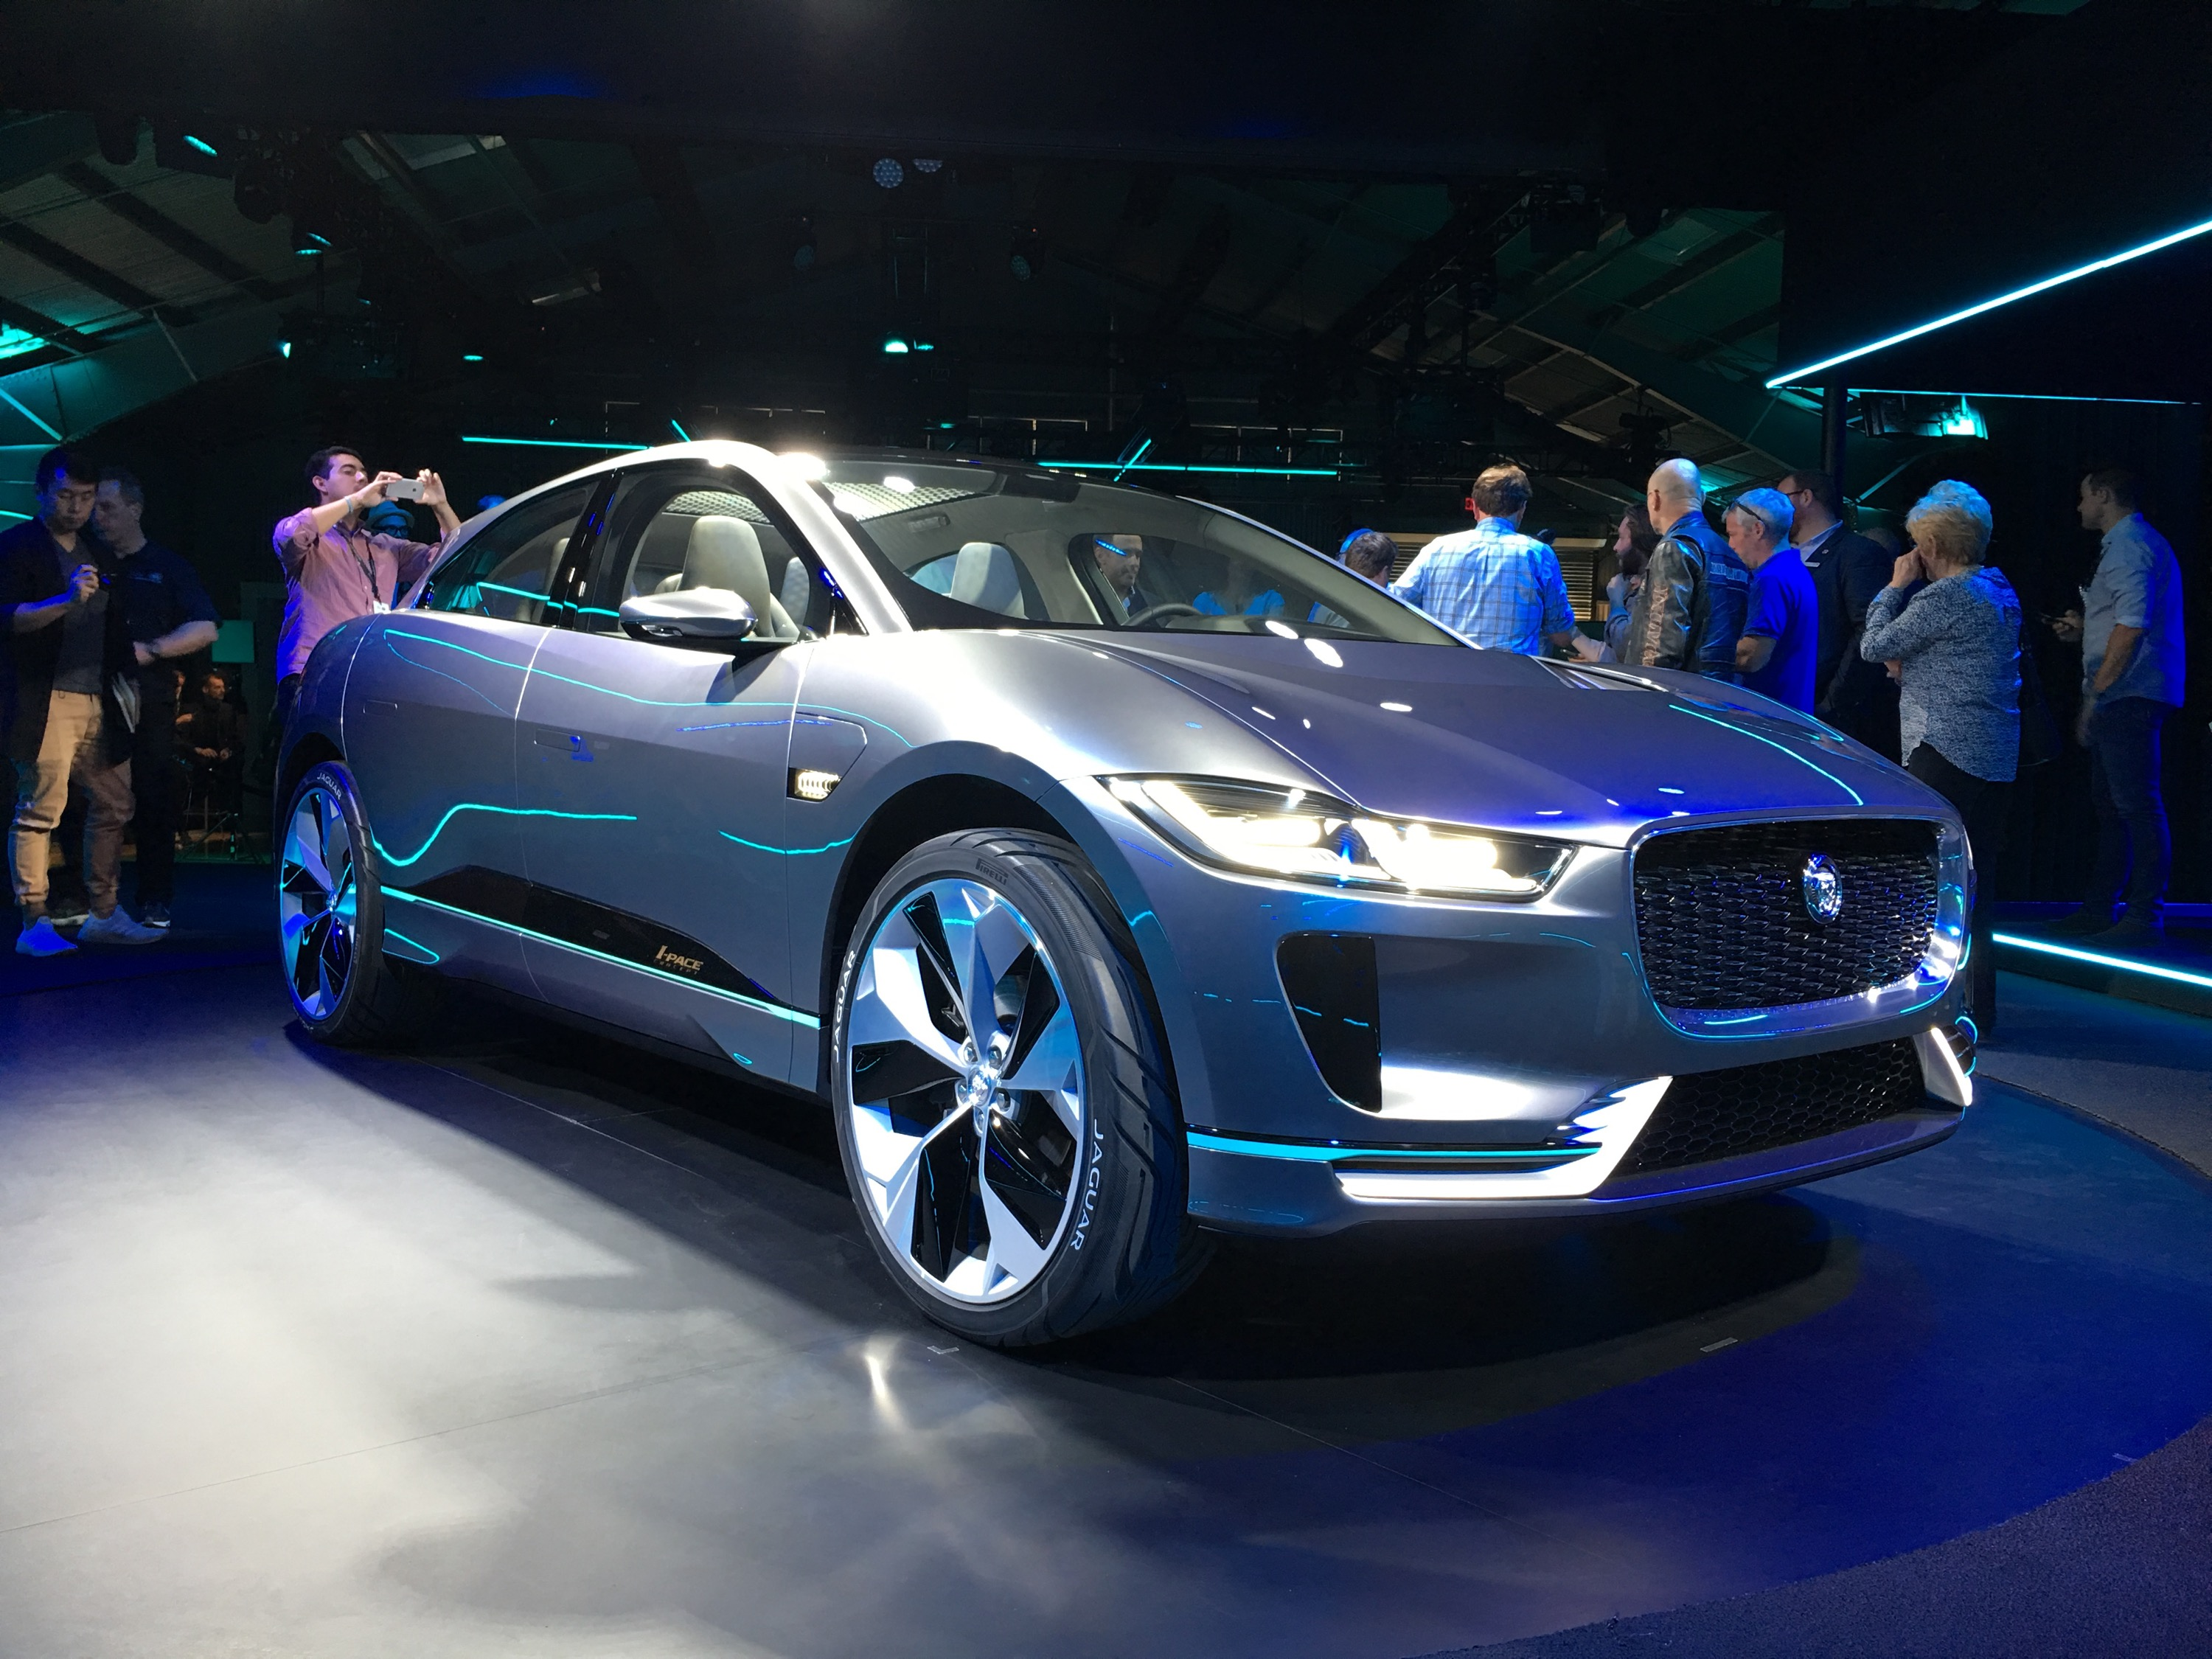 Jaguar F Type 2019 >> Jaguar I-Pace concept: Most important car since the E-Type - photos | CarAdvice